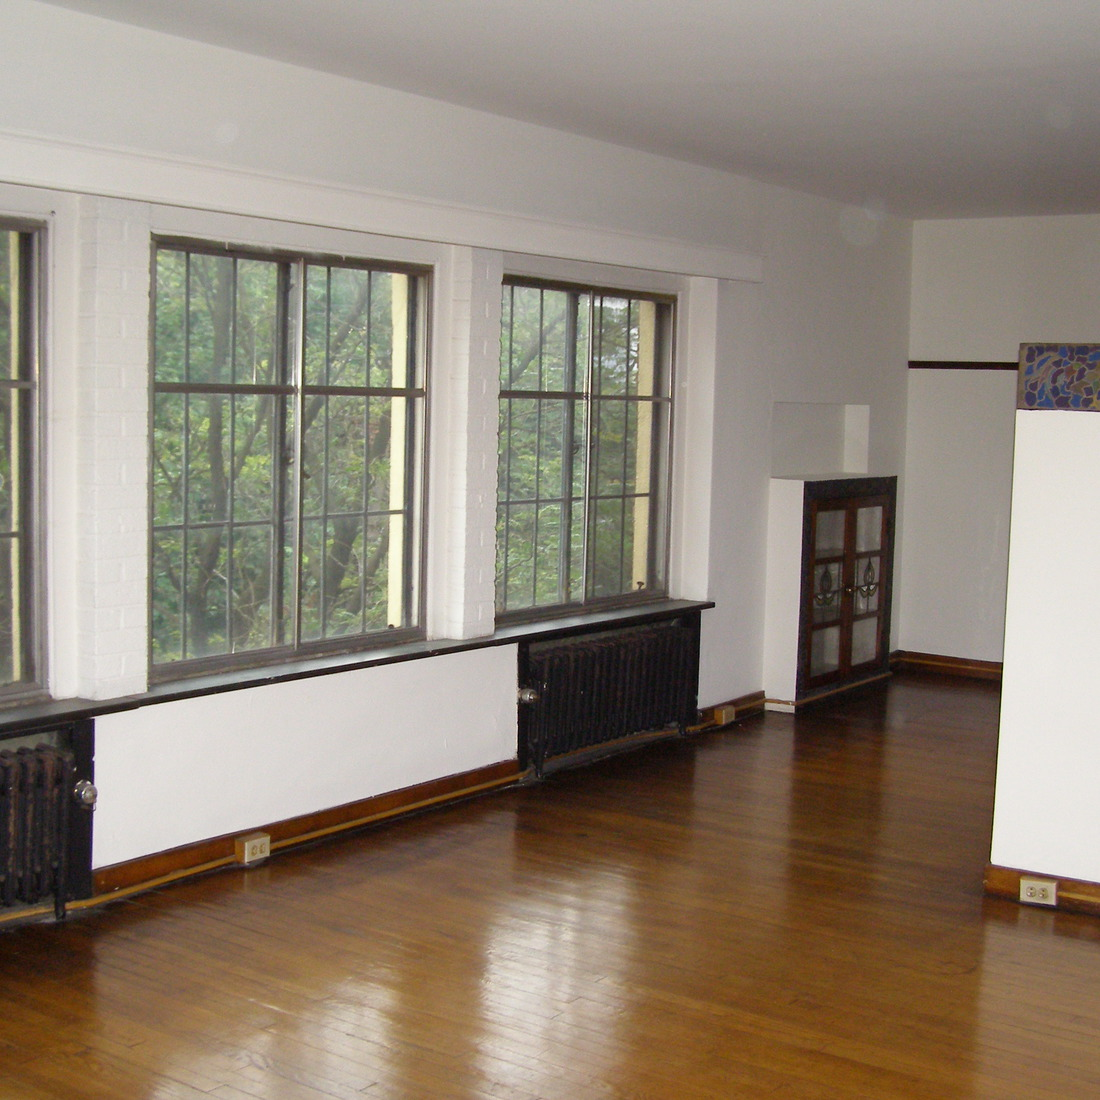 interior of 342 S. Highland Ave, Apt. 11A 2